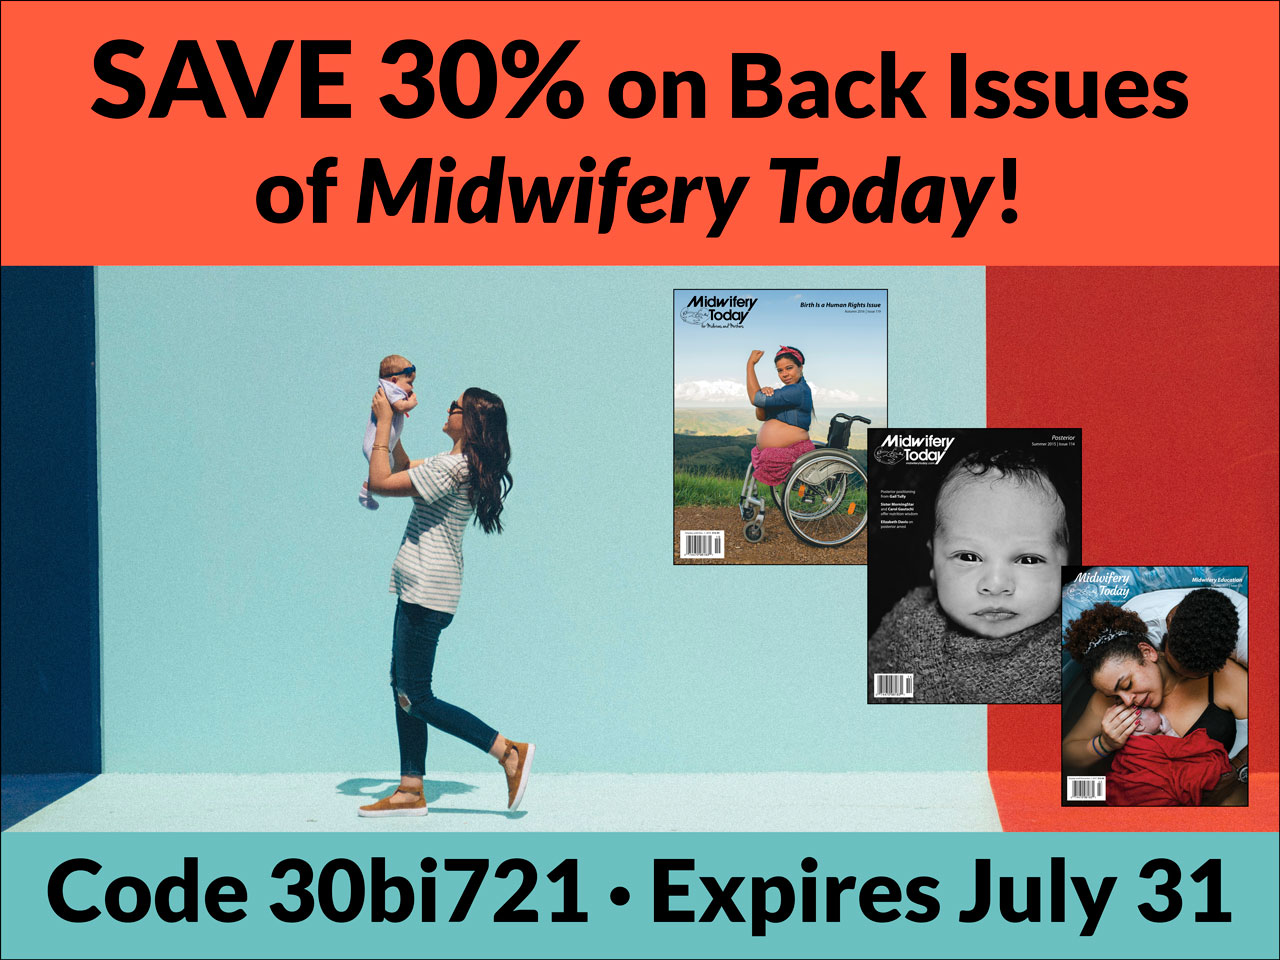 Save 30% on Midwifery Today back issues